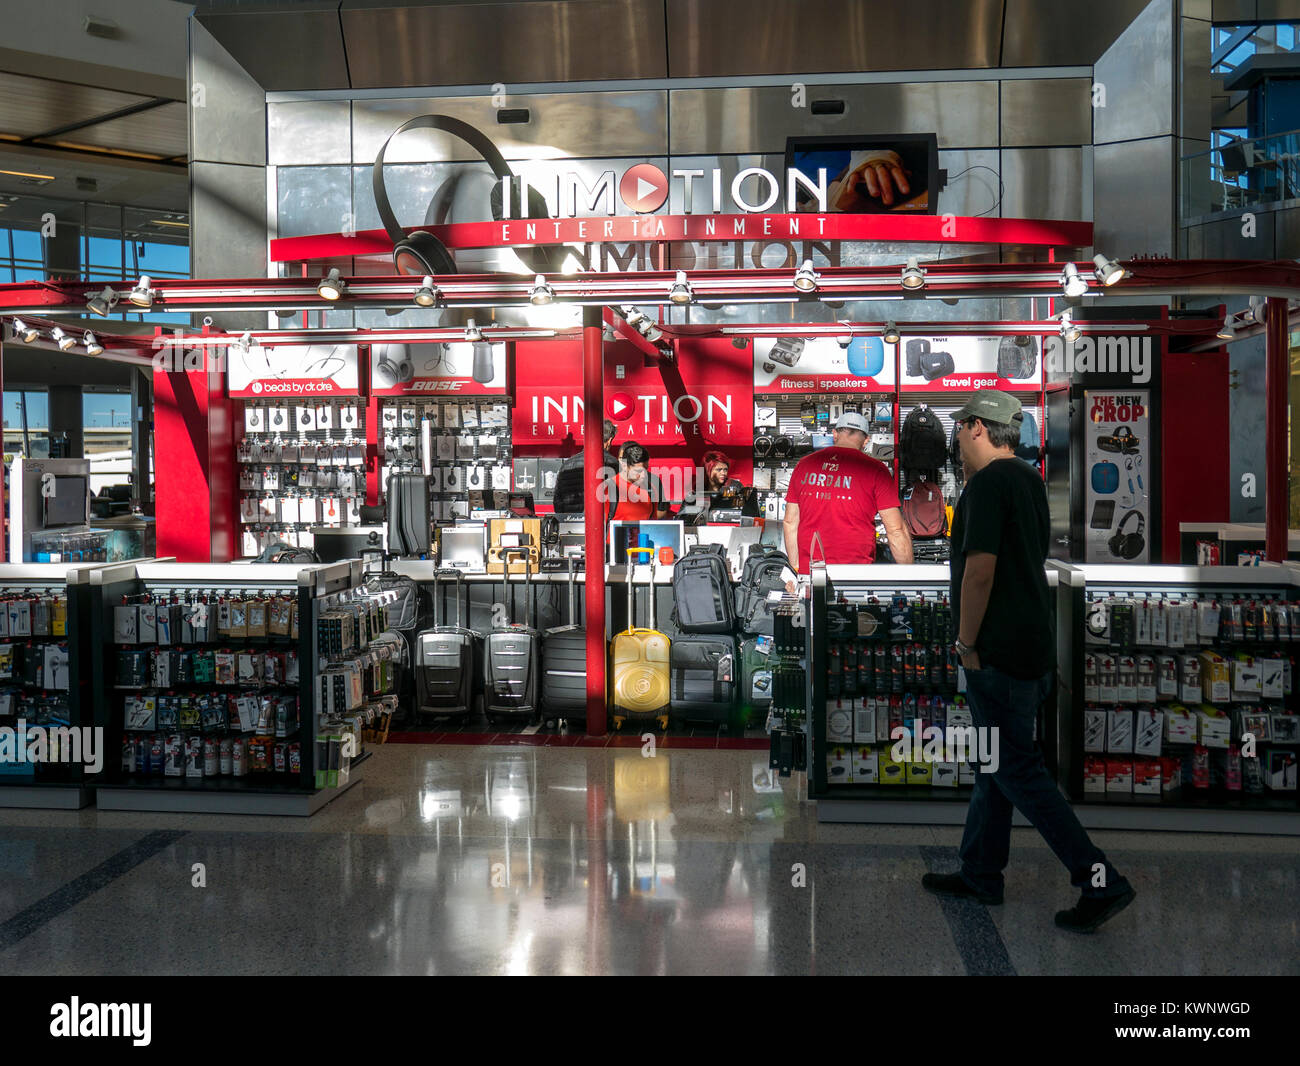 In Motion Electronics retail shop; Aeroparque Jorge Newbery; Buenos Aires; Argentina - Stock Image